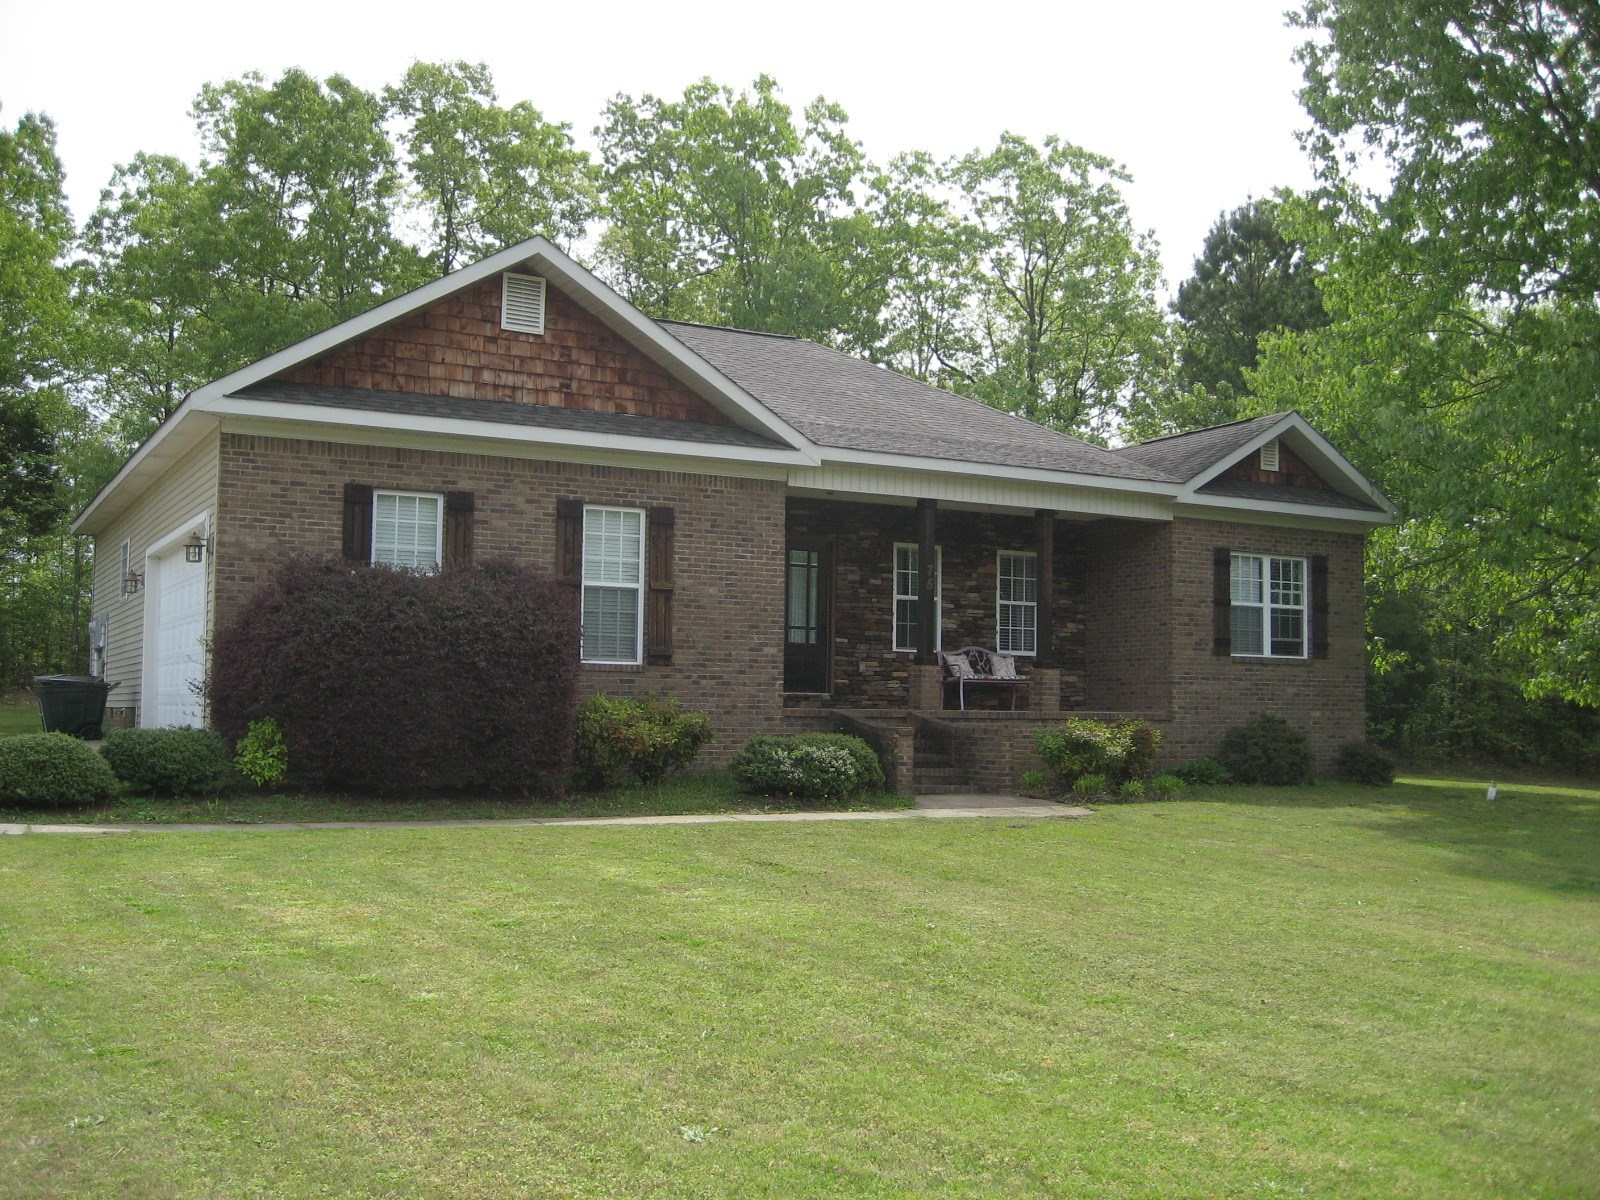 HOME FOR SALE IN ADAMSVILLE TN NEAR SCHOOL, DECK